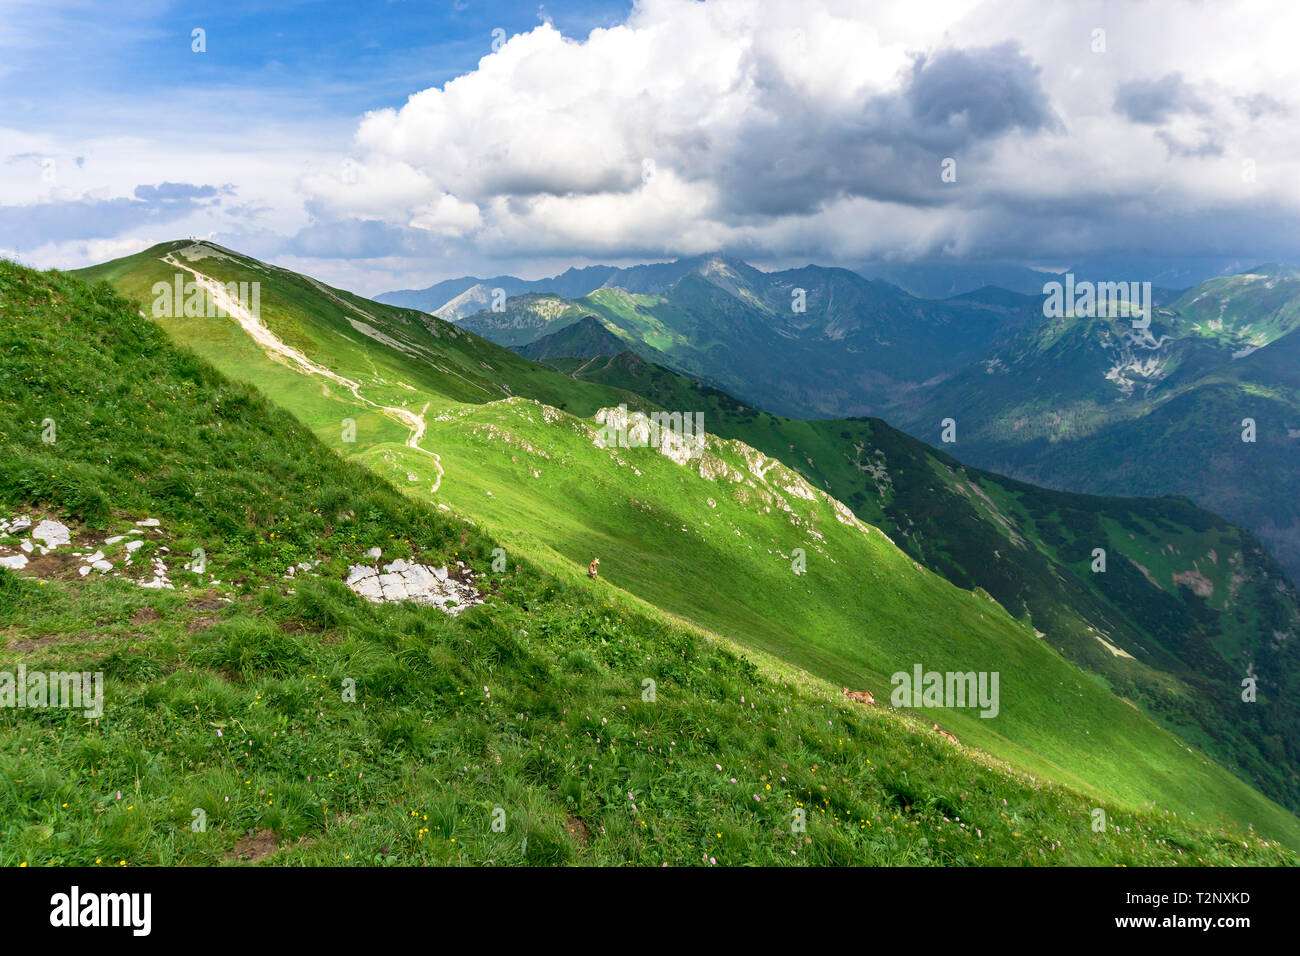 Whirling clouds over the peaks of the Tatra Mountains in June. - Stock Image